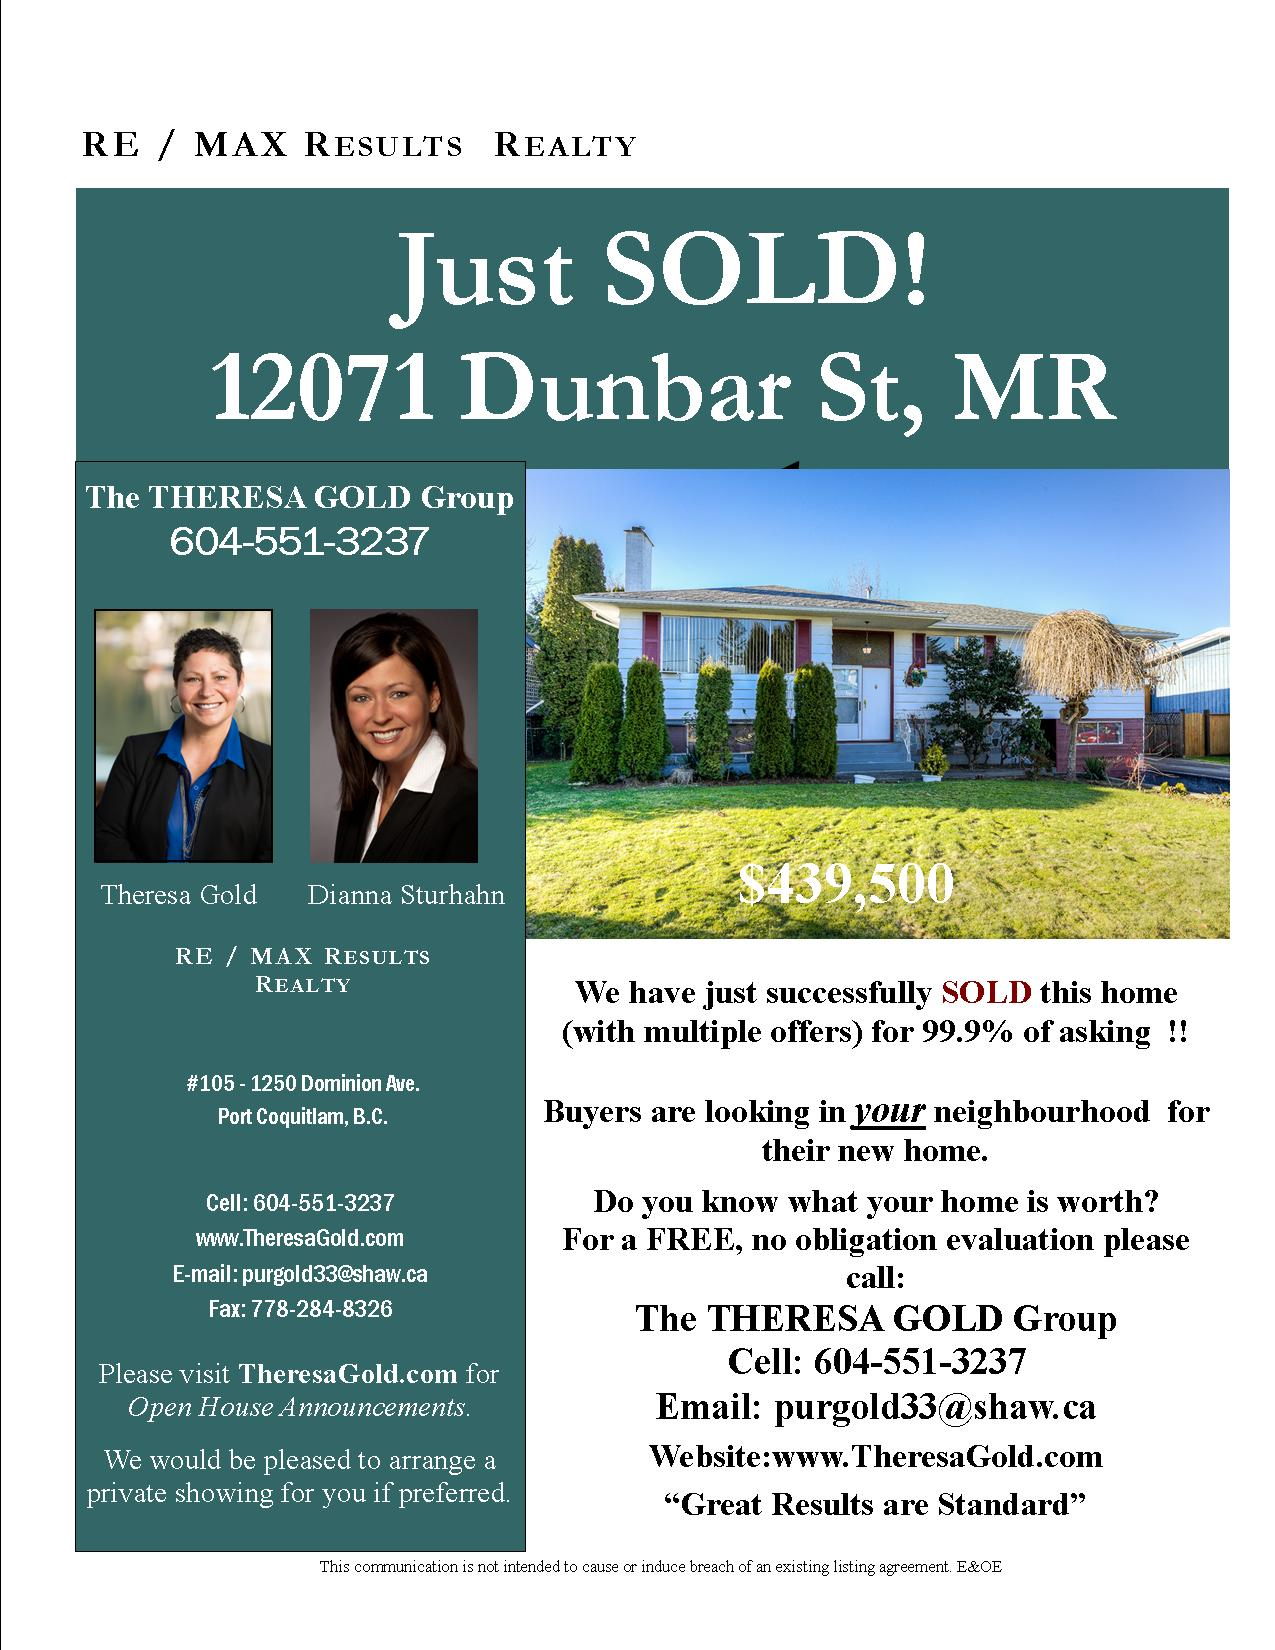 Just SOLD - 12071 Dunbar St, MR JPEG.jpg